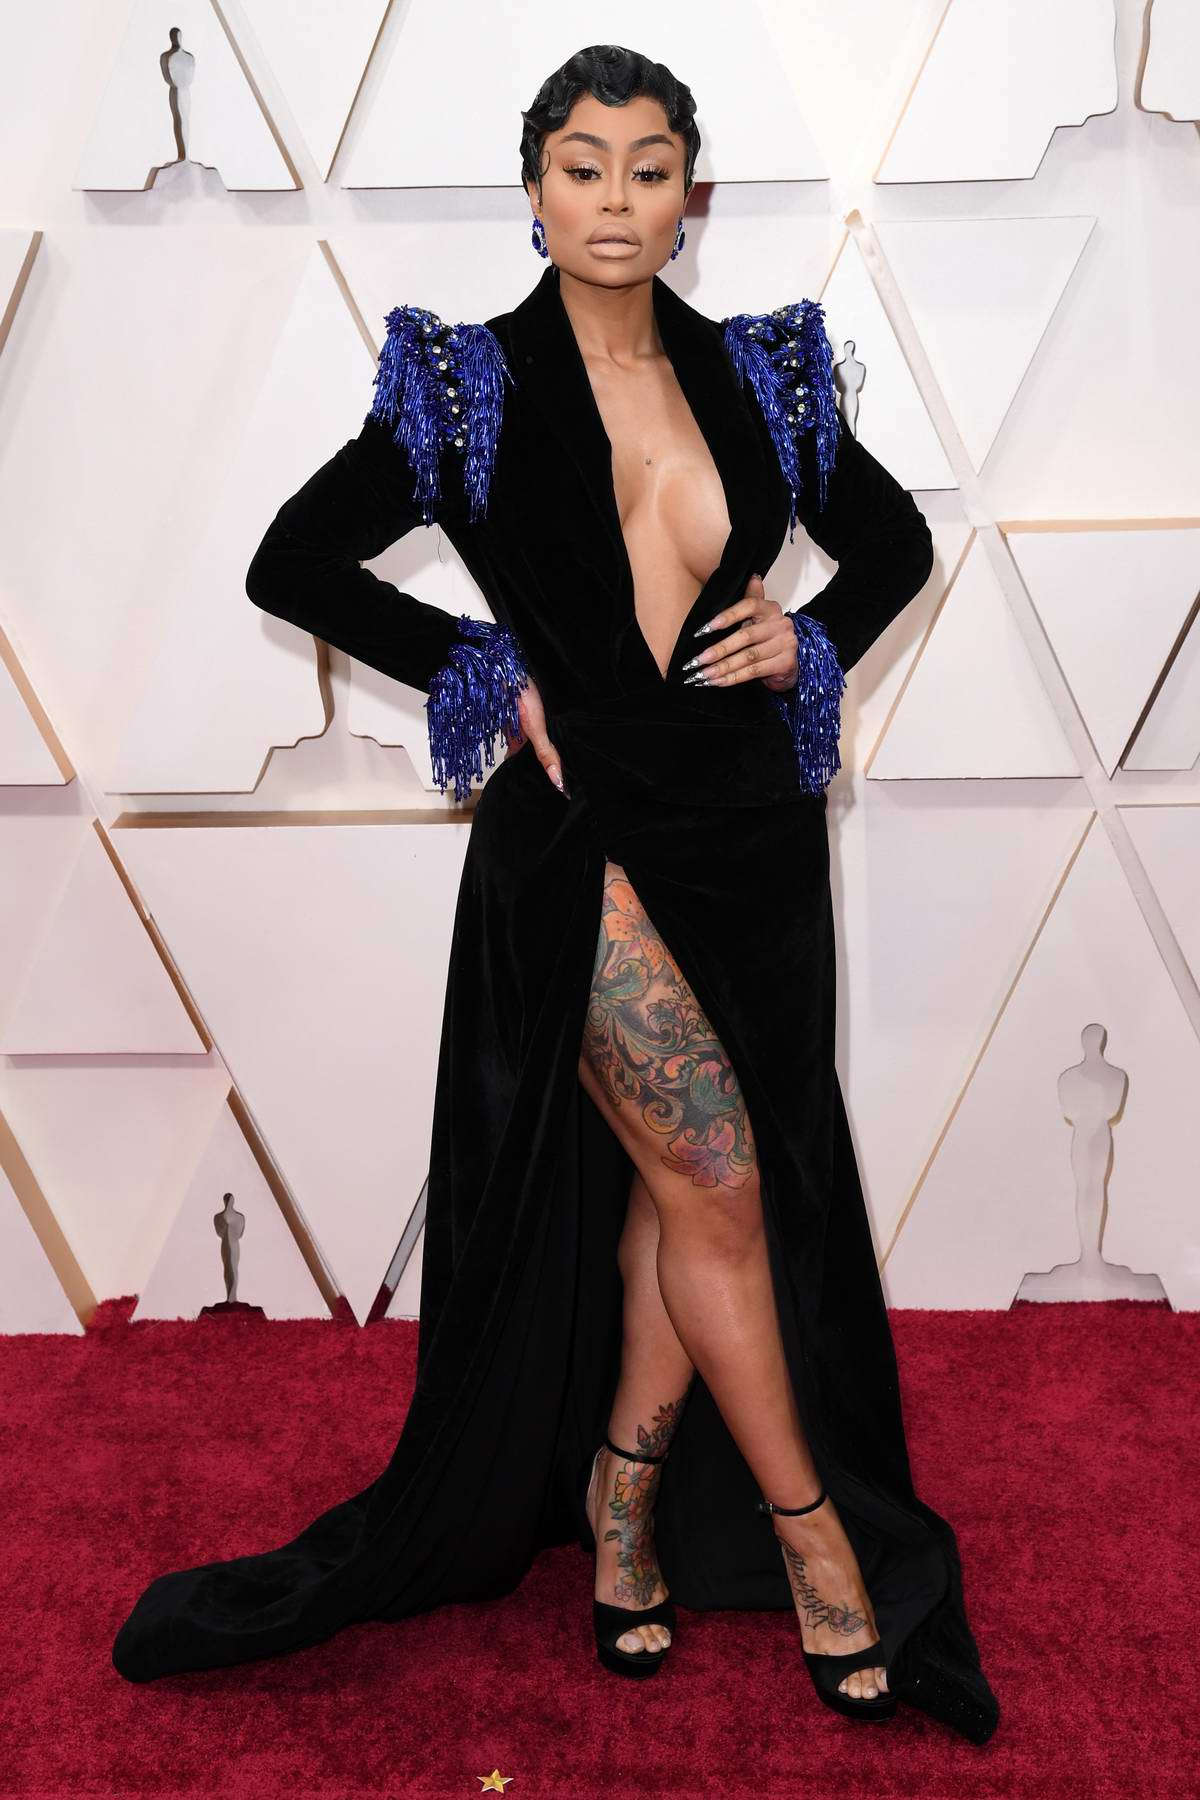 Blac Chyna attends the 92nd Annual Academy Awards at Dolby Theatre in Los Angeles